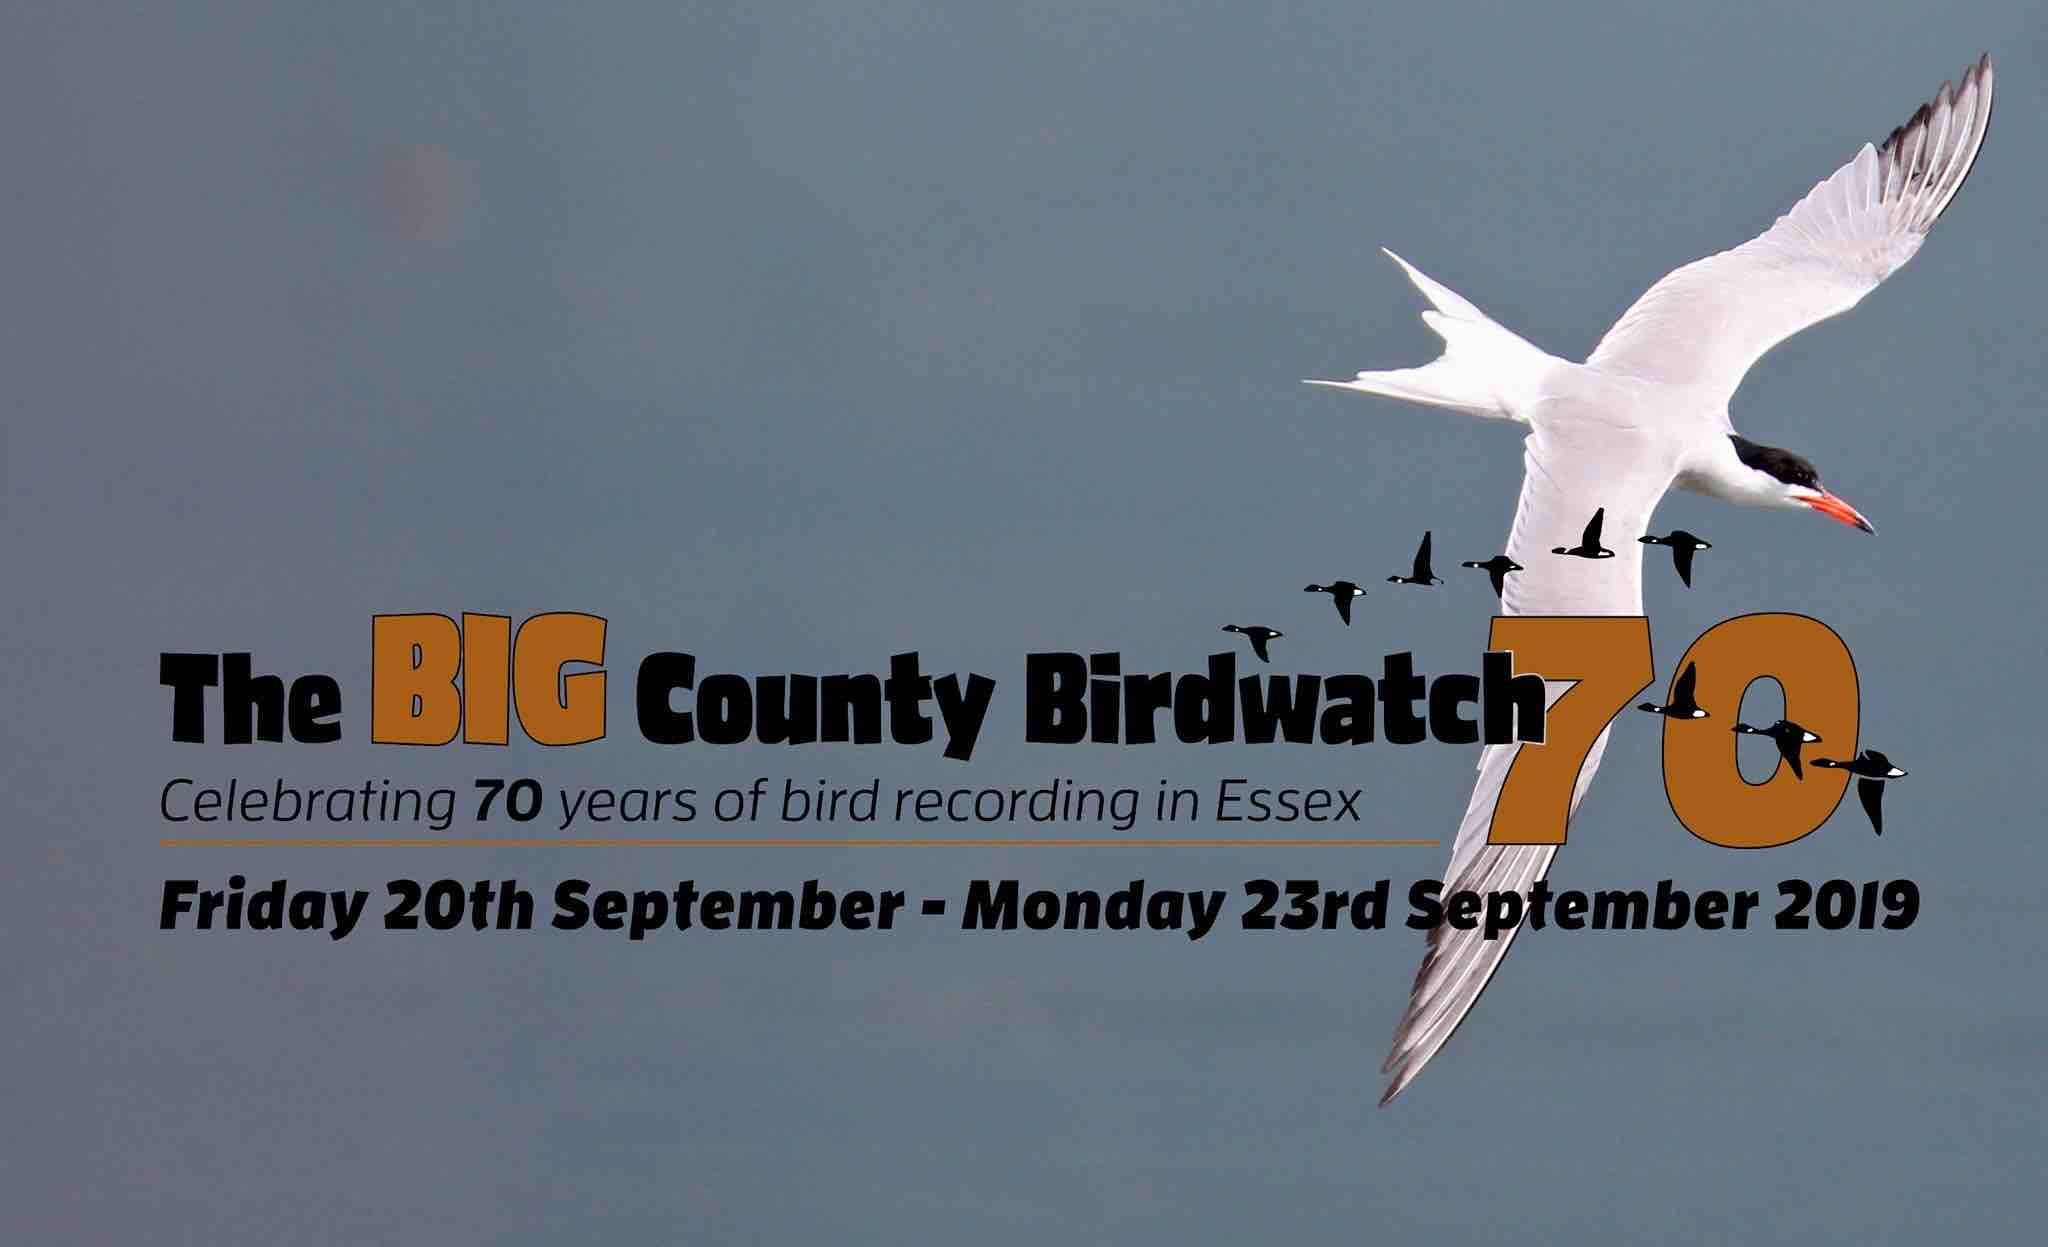 The Big County Birdwatch